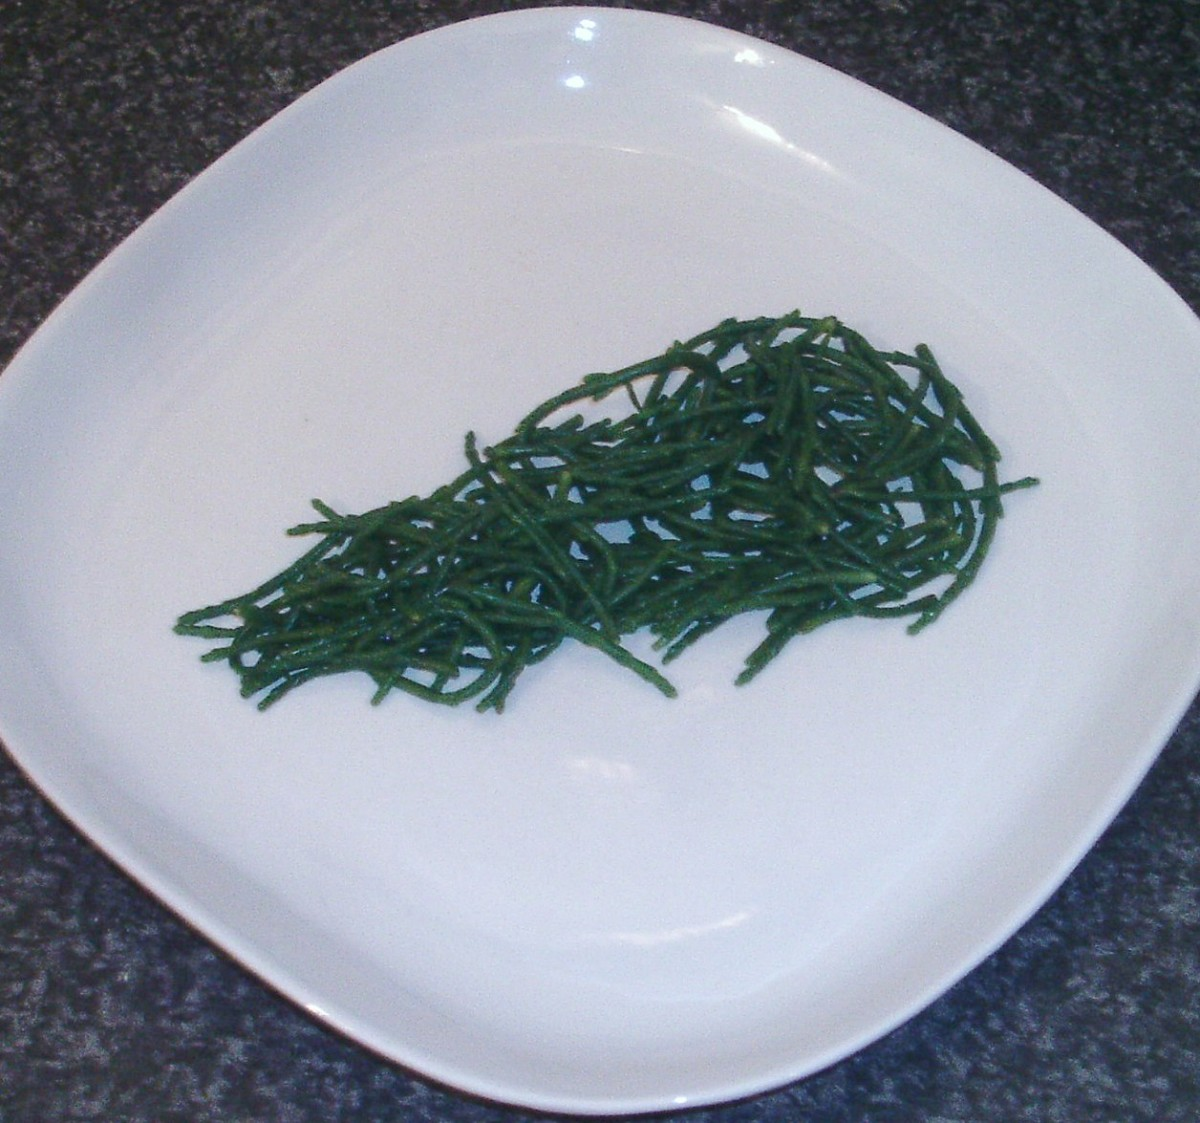 Samphire is arranged as a bed for cod